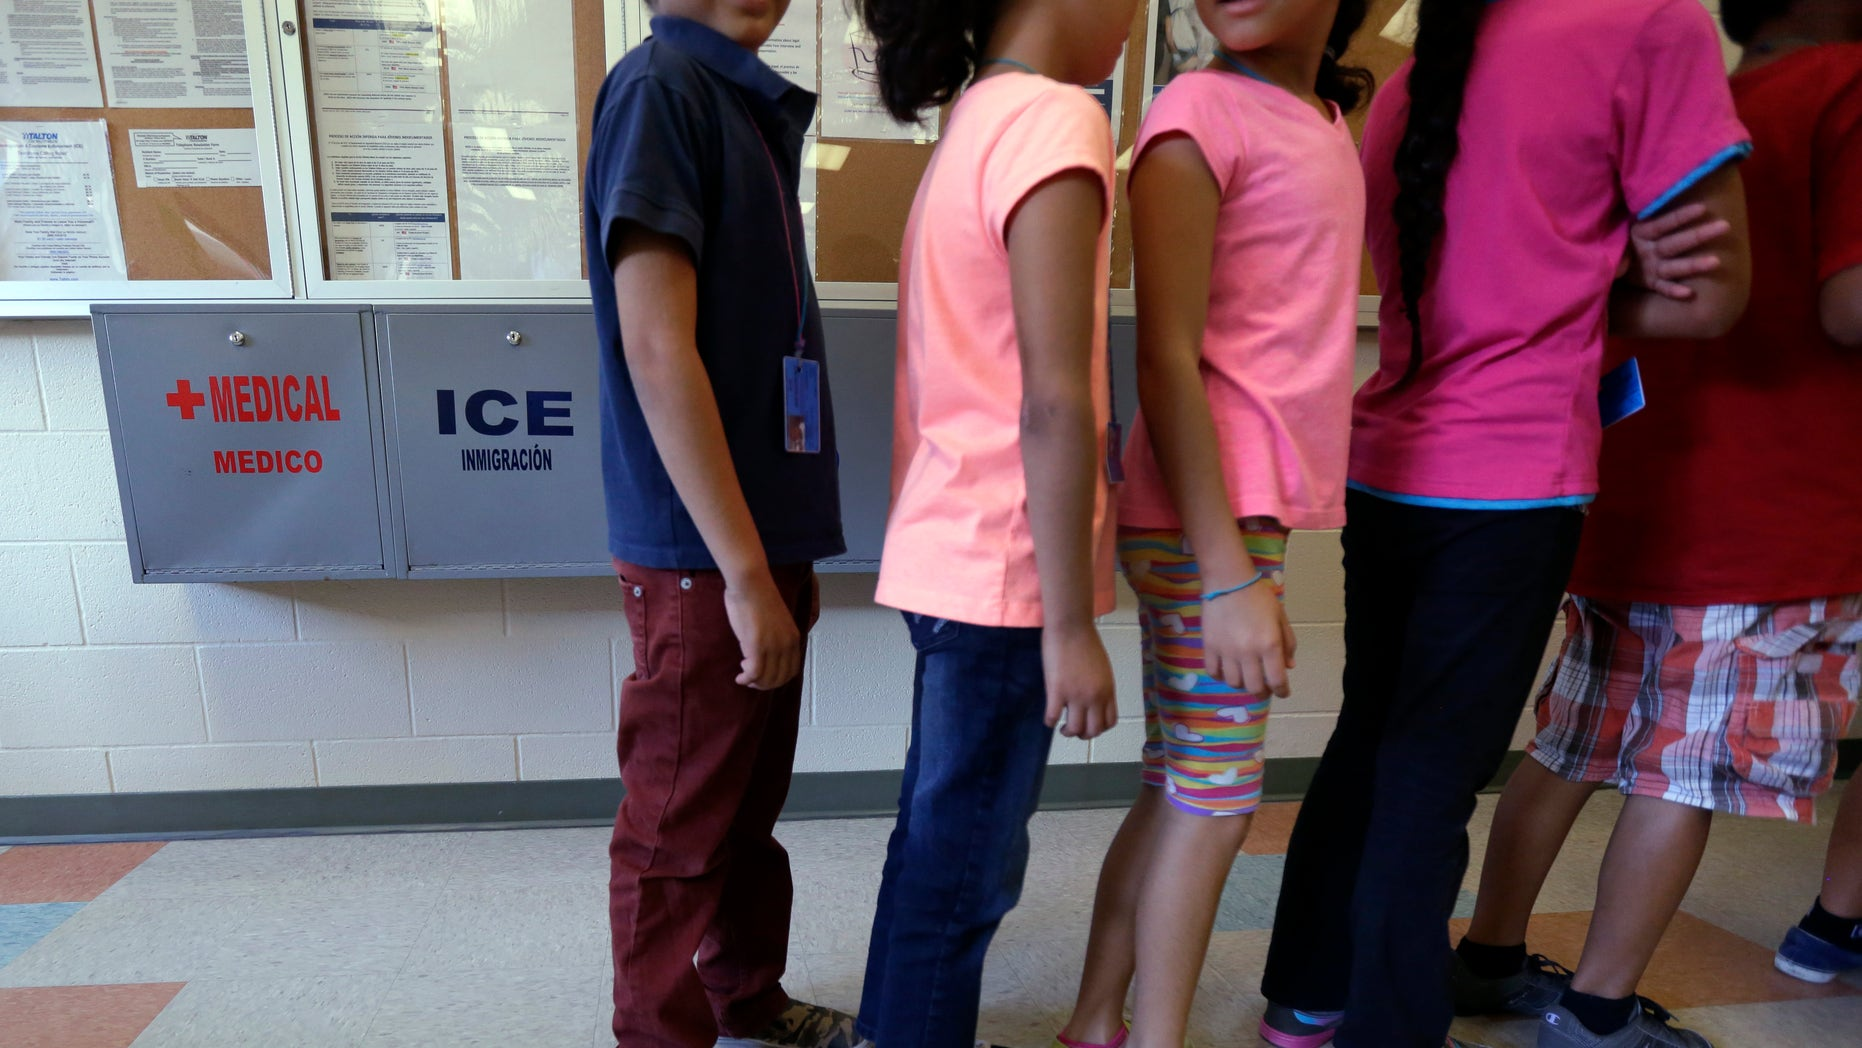 Detained immigrant children line up in a cafeteria at a temporary home in Karnes City, Texas.